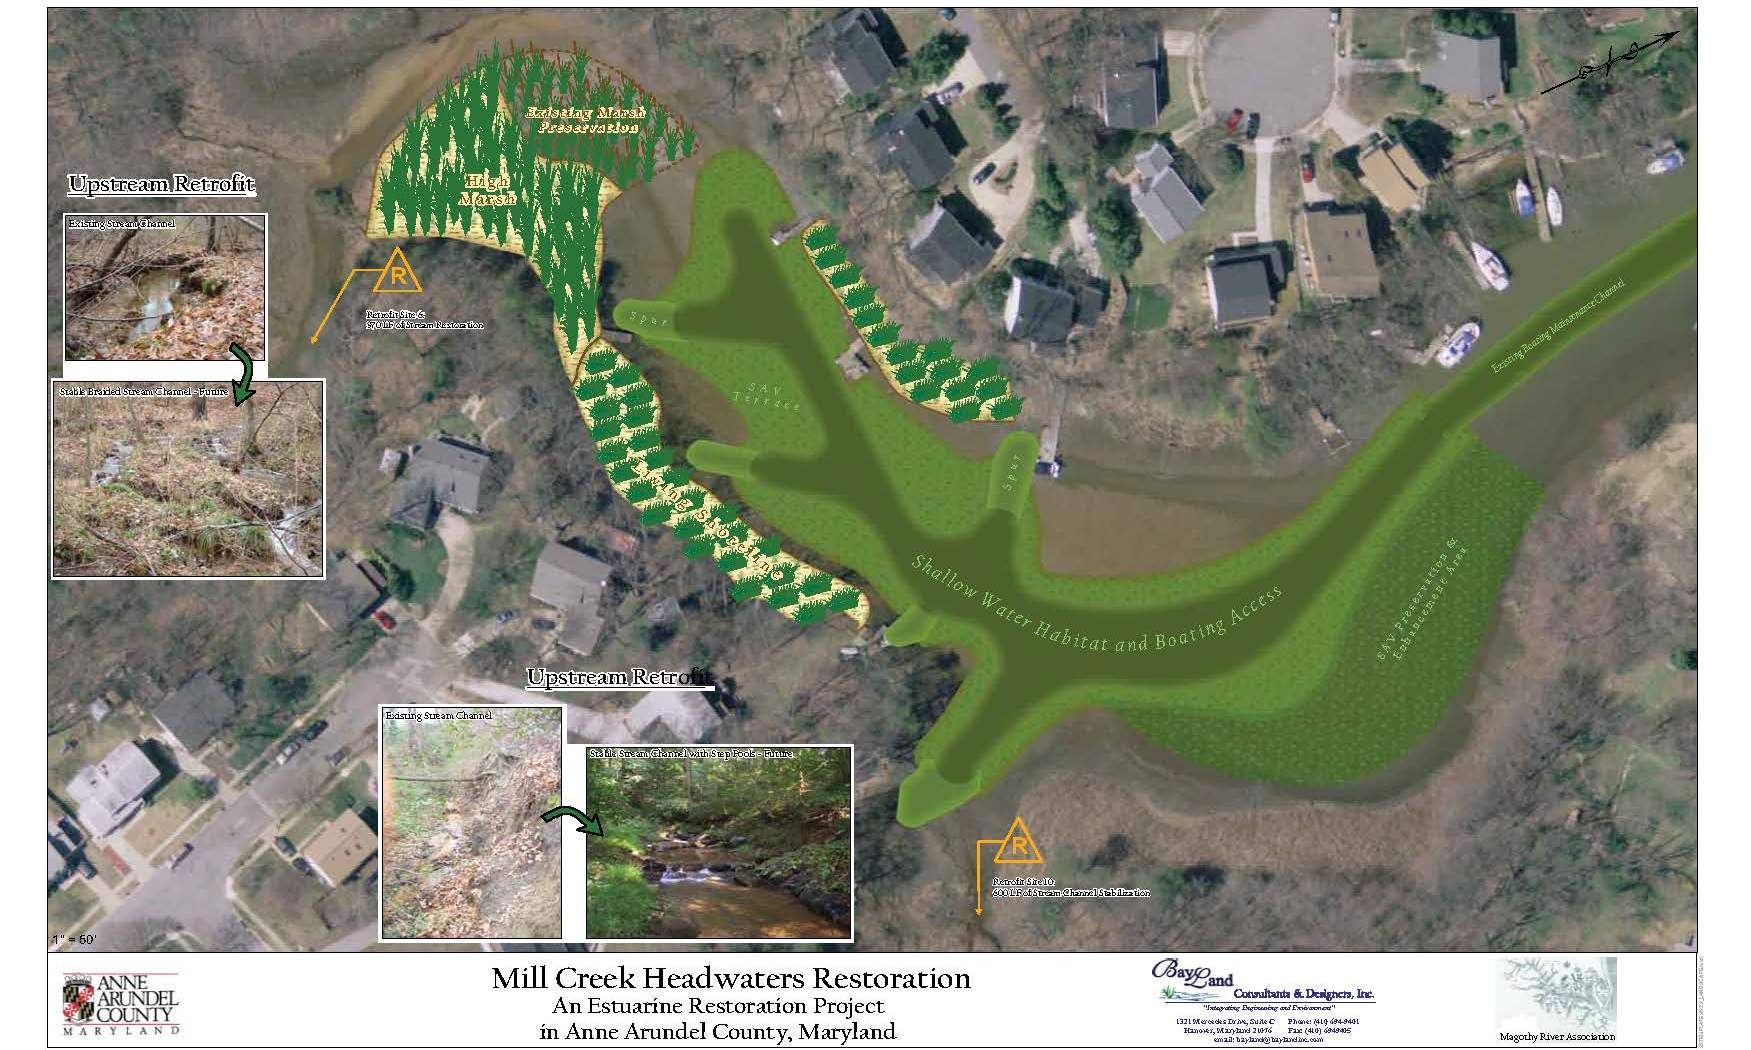 Mill Creek Headwaters Restoration